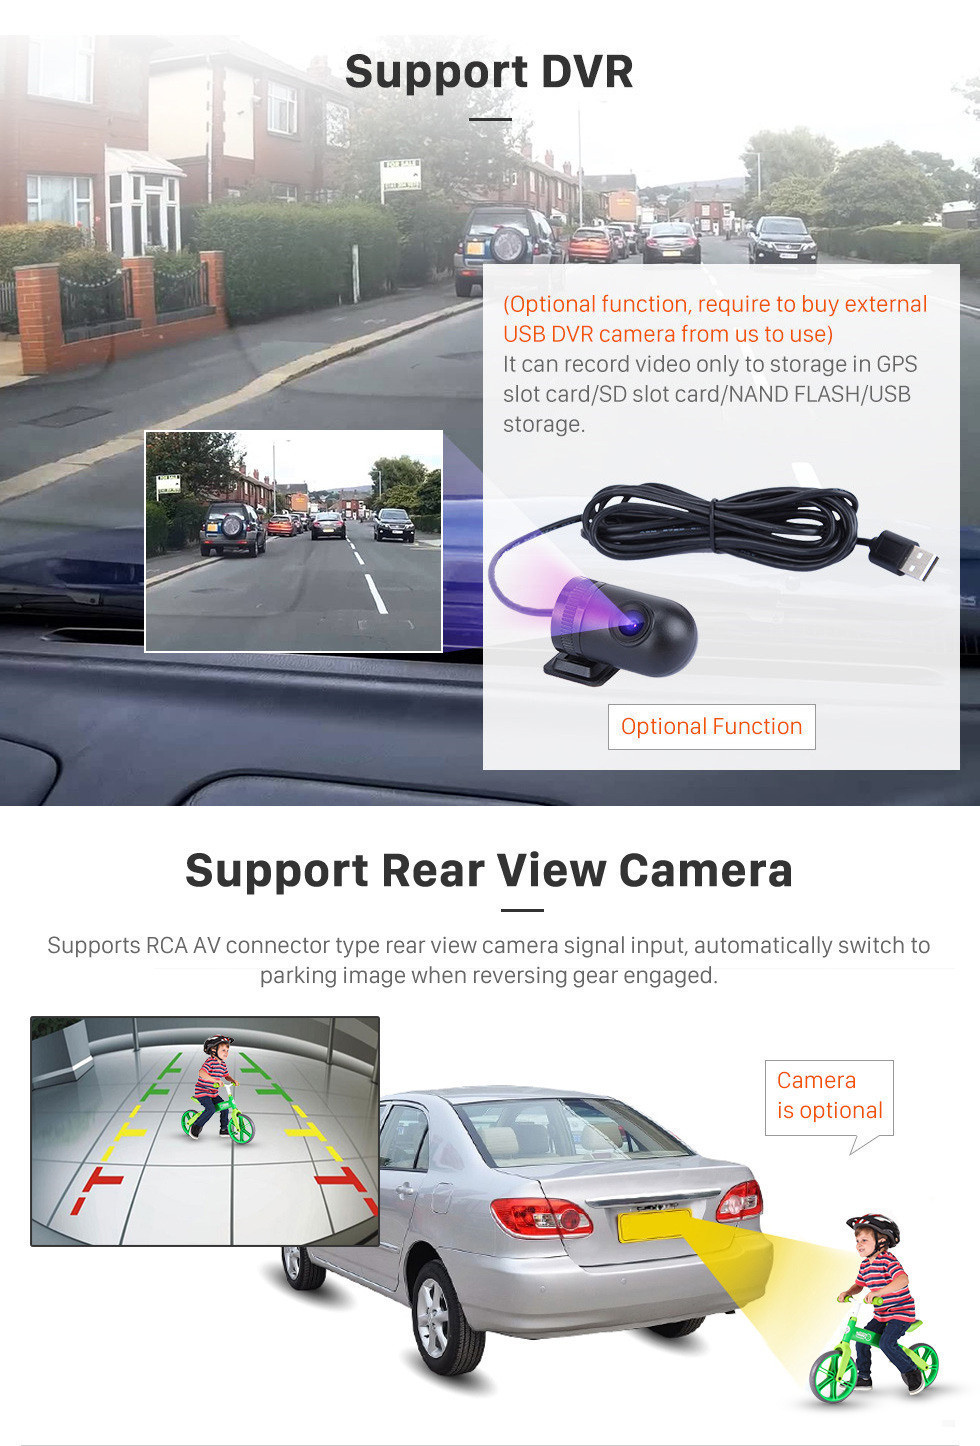 Seicane 8 inch Android 10.0 HD Touch Screen Car Stereo Radio Head Unit for 2018 Subaru XV Bluetooth DVD player DVR Rearview camera TV Video WIFI Steering Wheel Control USB Mirror link OBD2